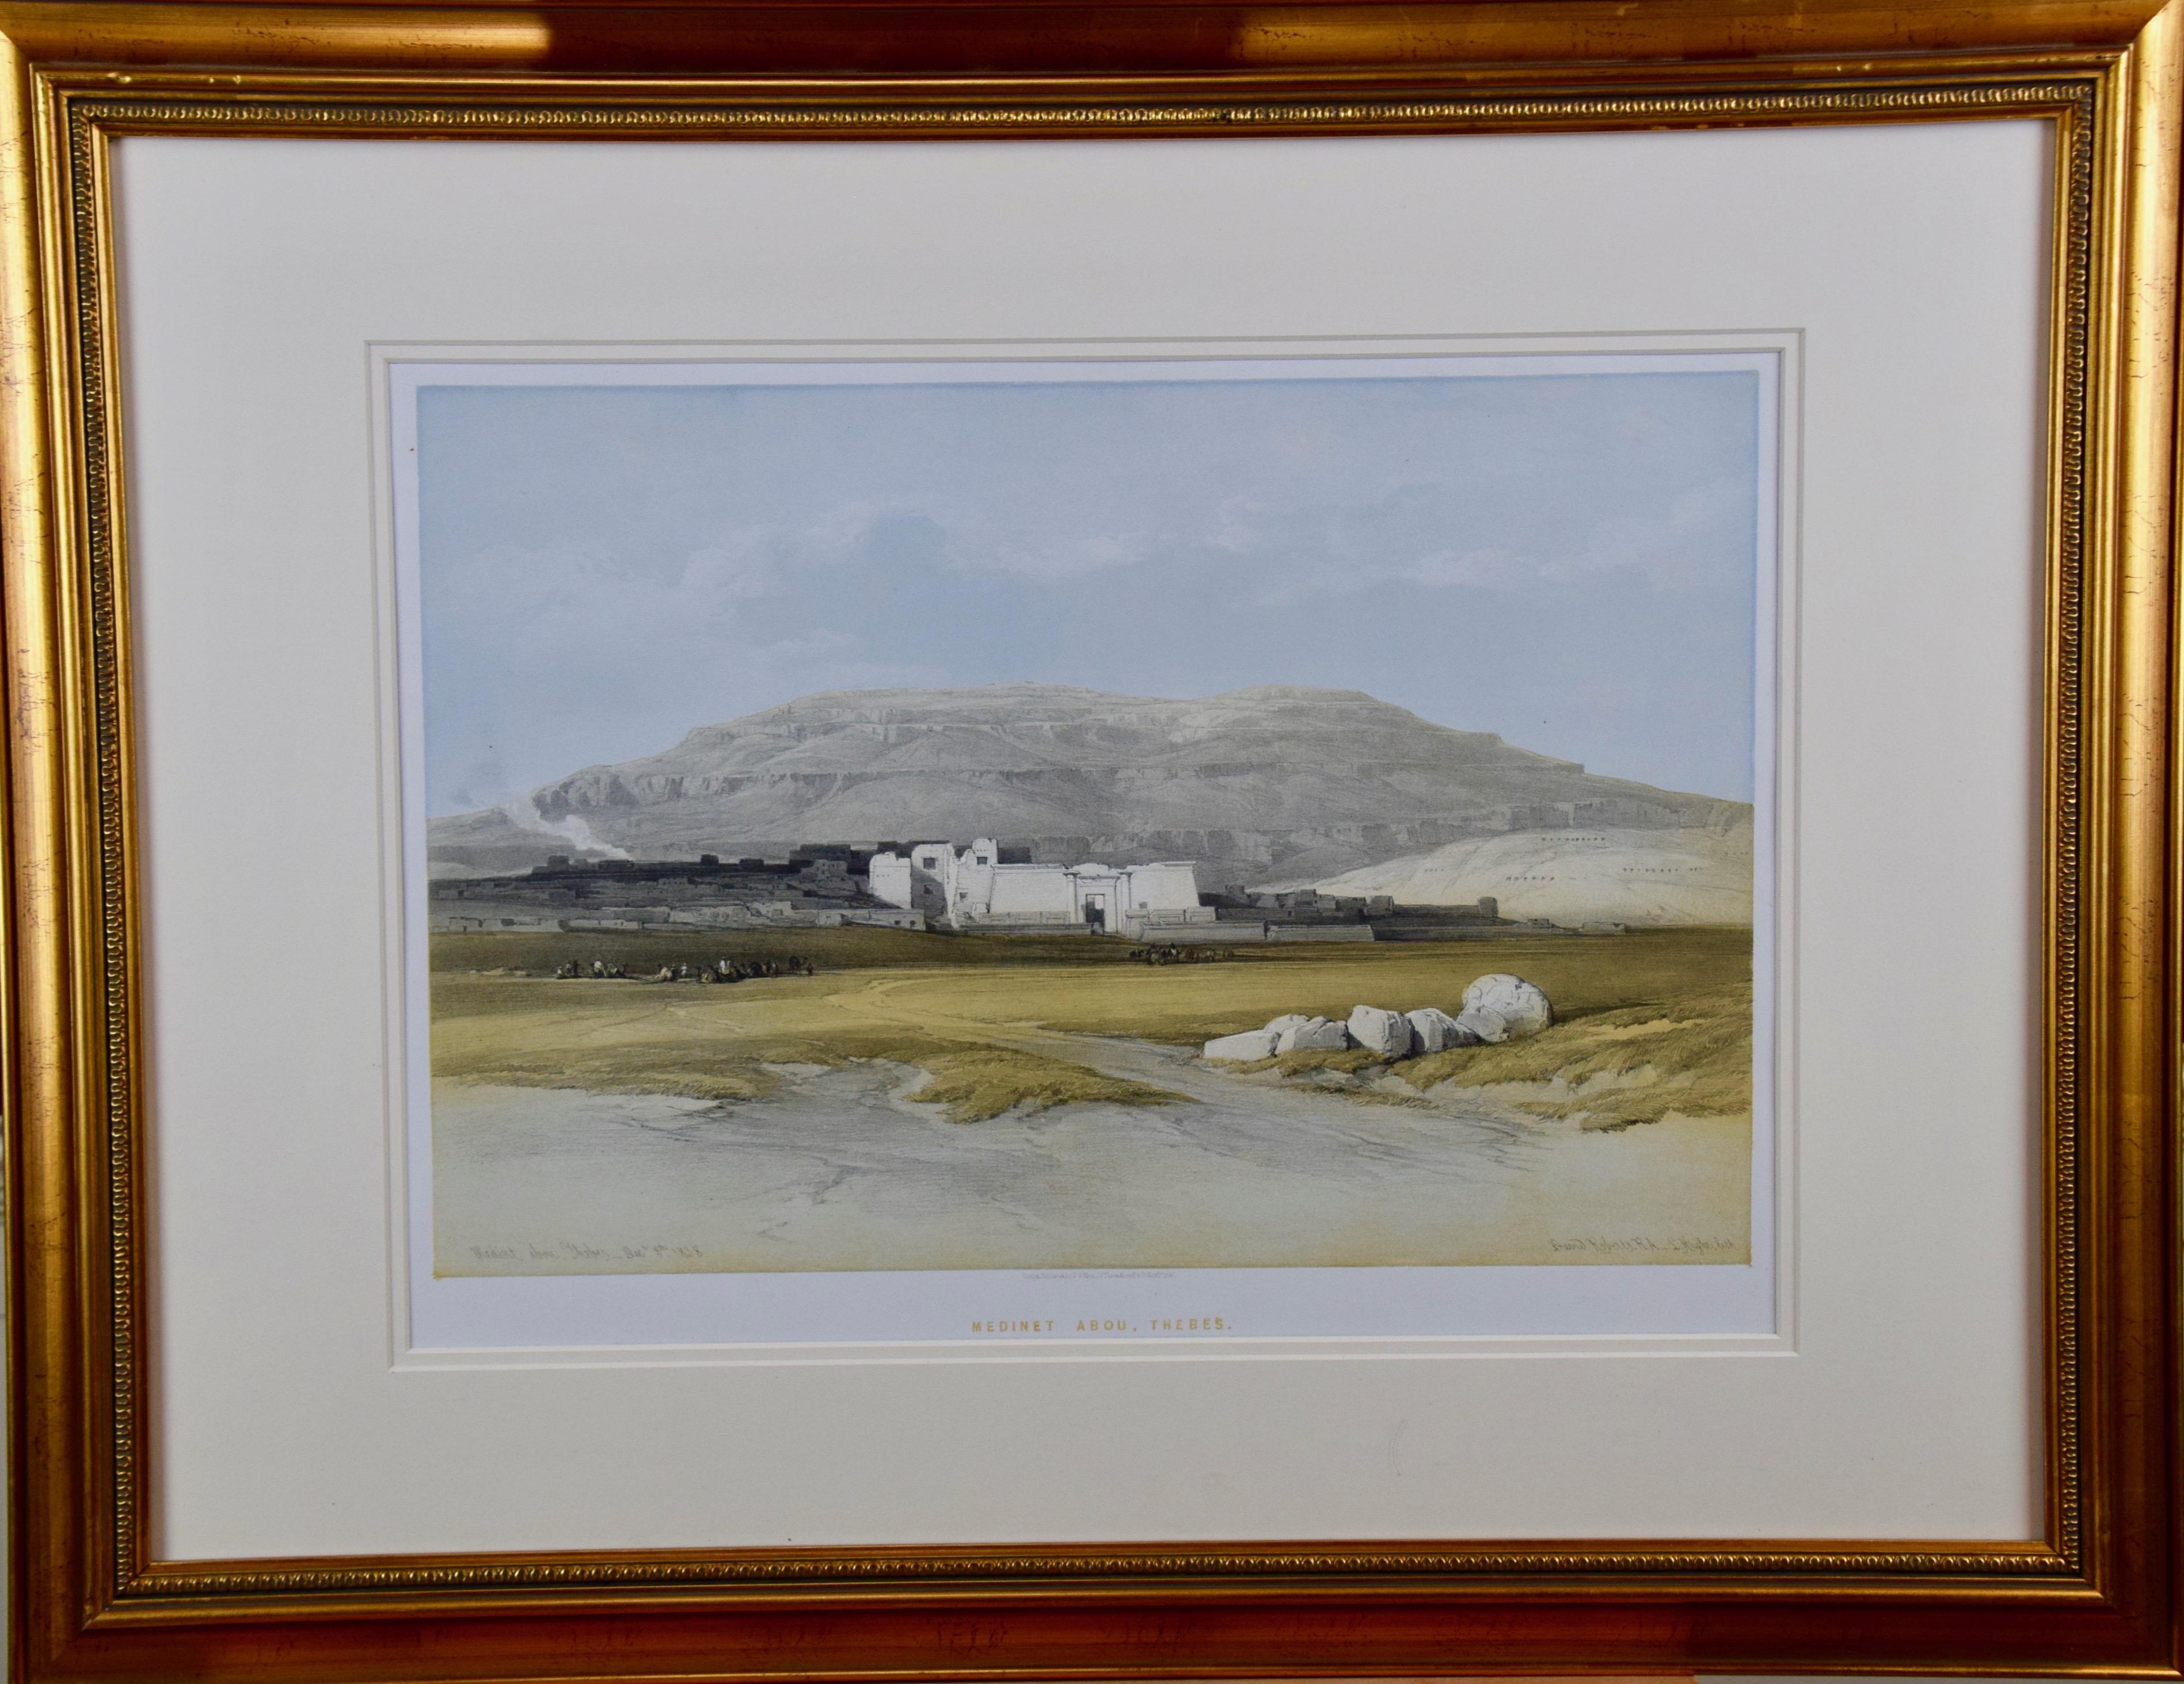 """David Roberts' 19th Century Hand Colored Lithograph, """"Medinet Abou, Thebes"""""""